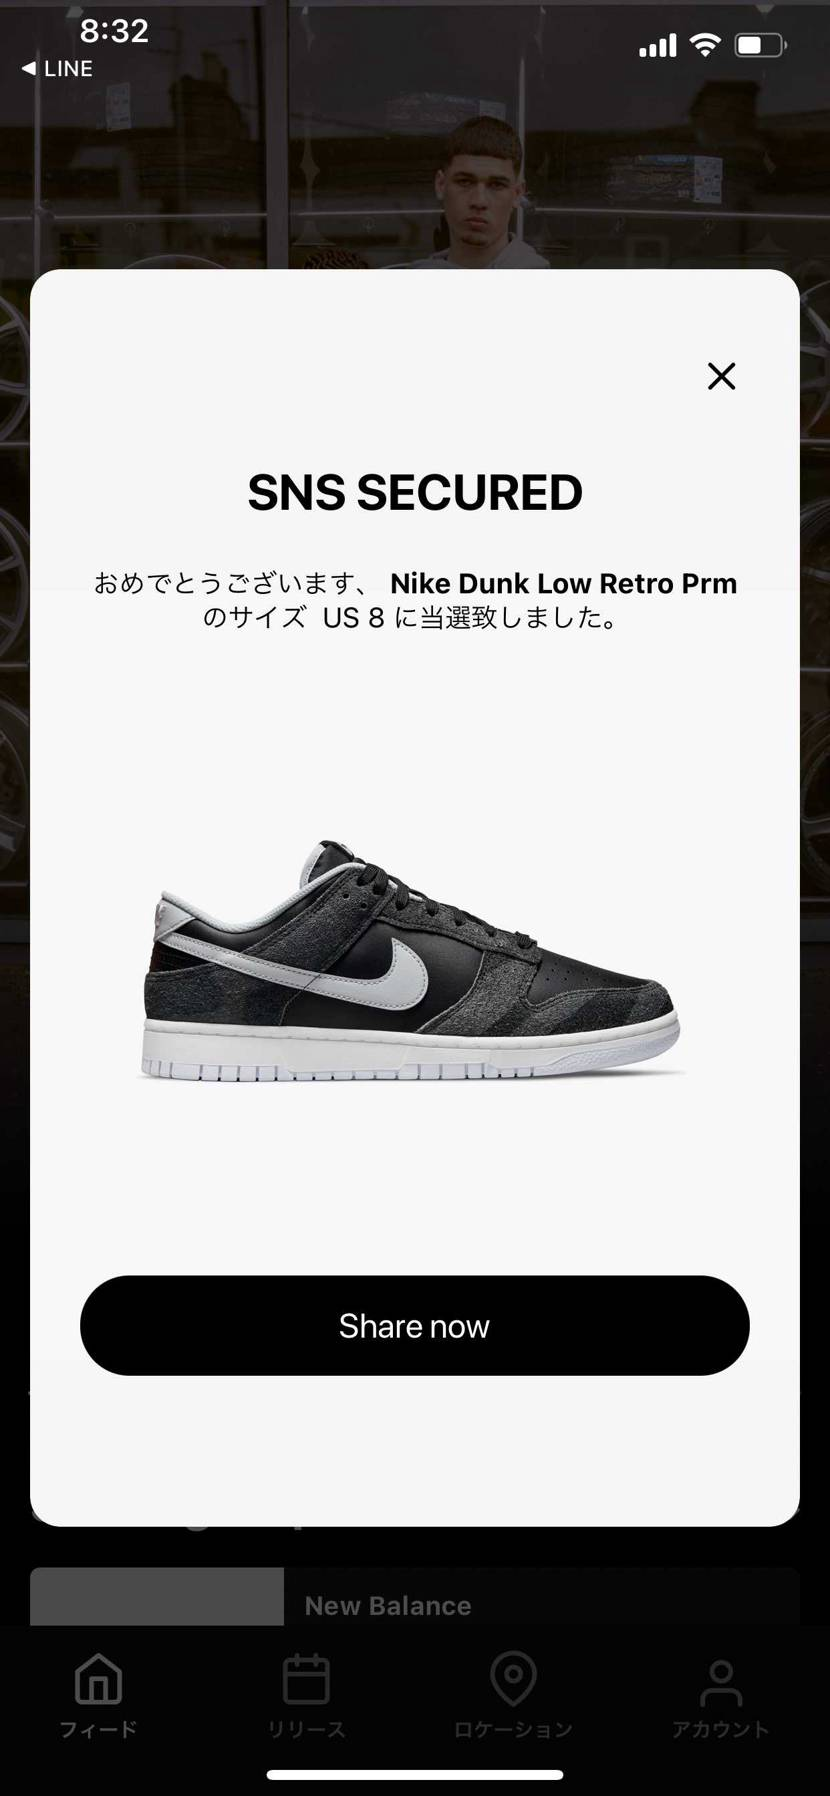 SNKRSは全滅だったけどSNS👍